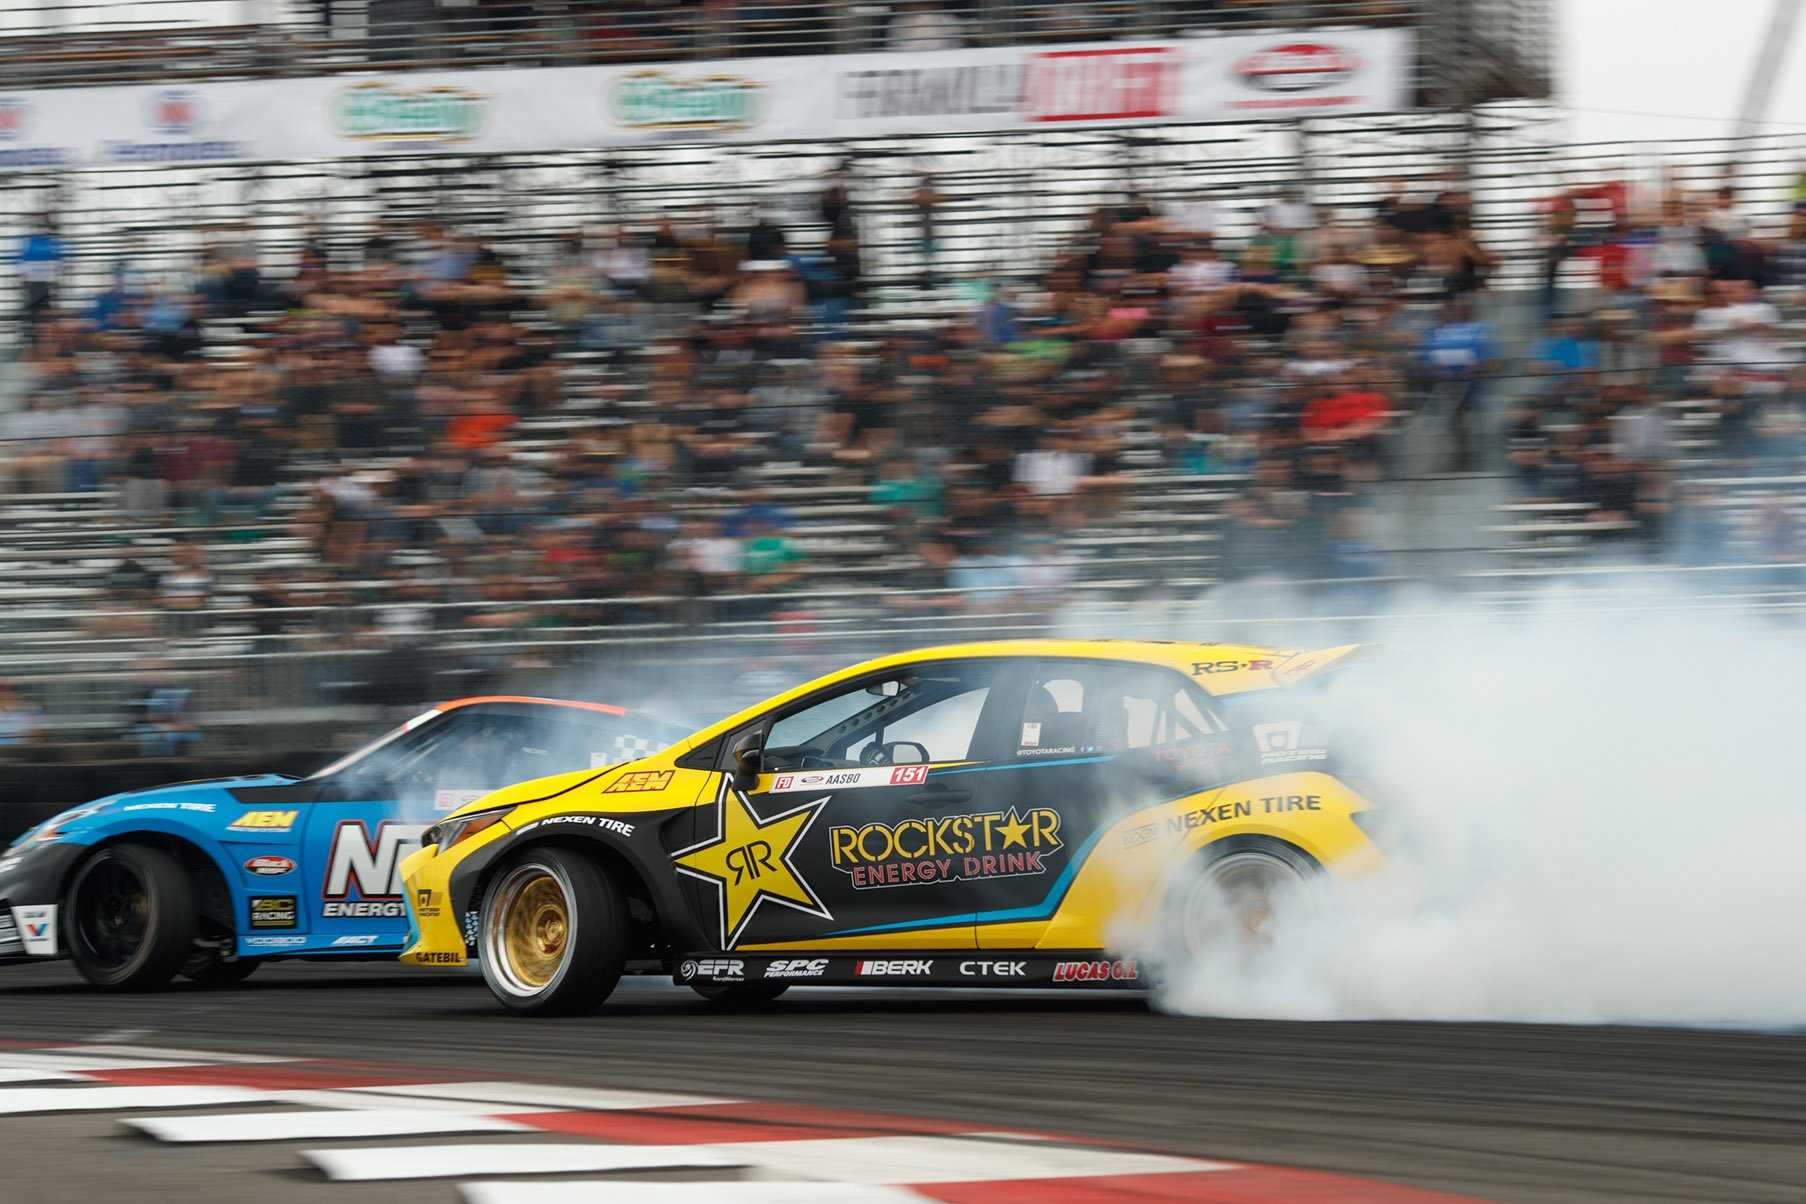 Getting Sideways With Formula Drift Champion Fredric Aasbo